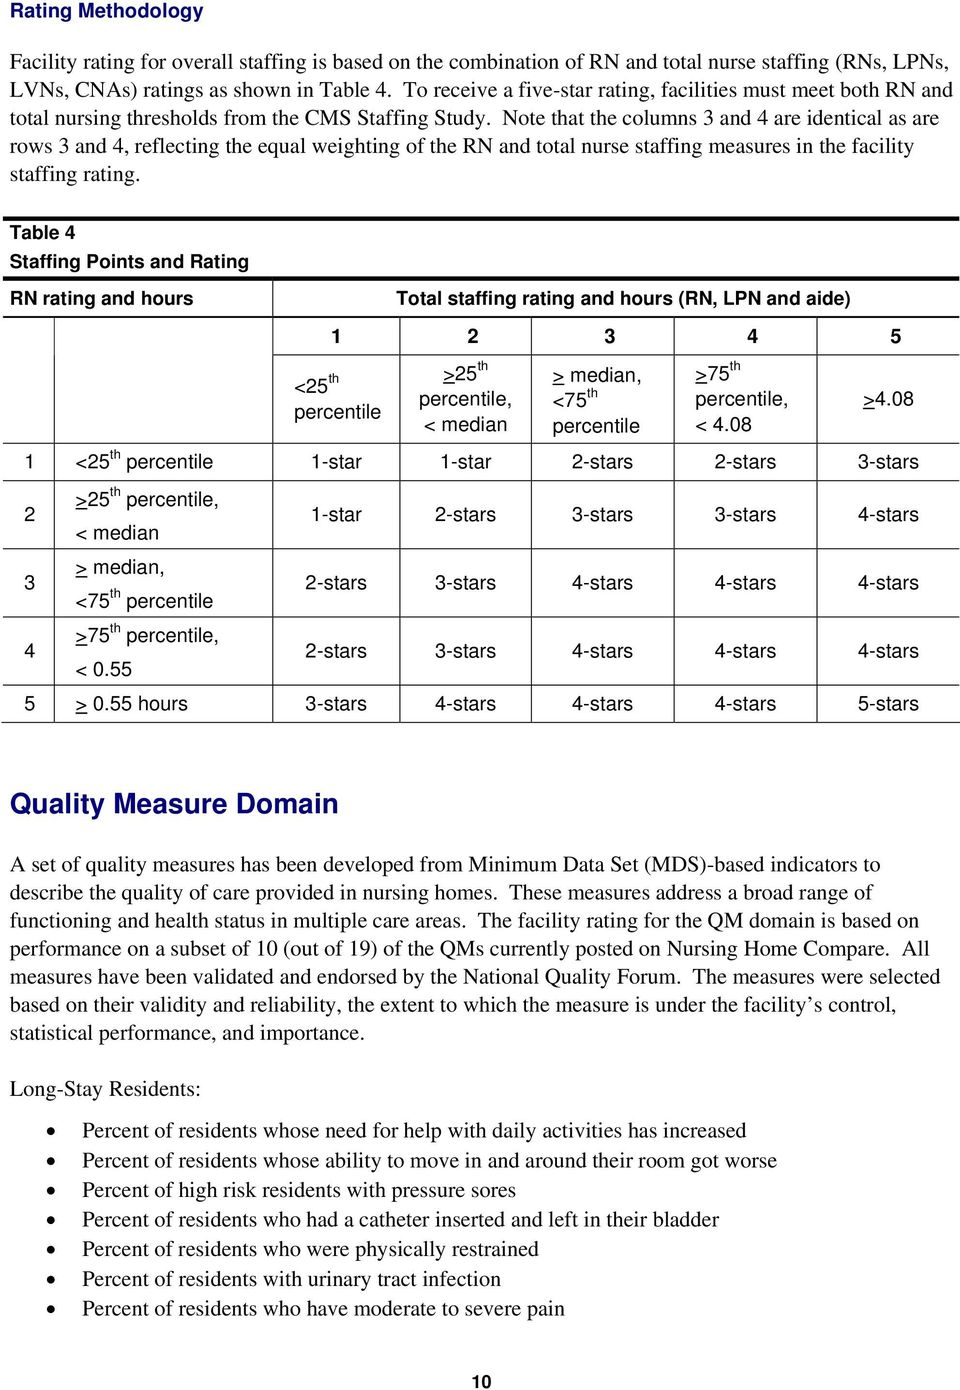 Note that the columns 3 and 4 are identical as are rows 3 and 4, reflecting the equal weighting of the RN and total nurse staffing measures in the facility staffing rating.